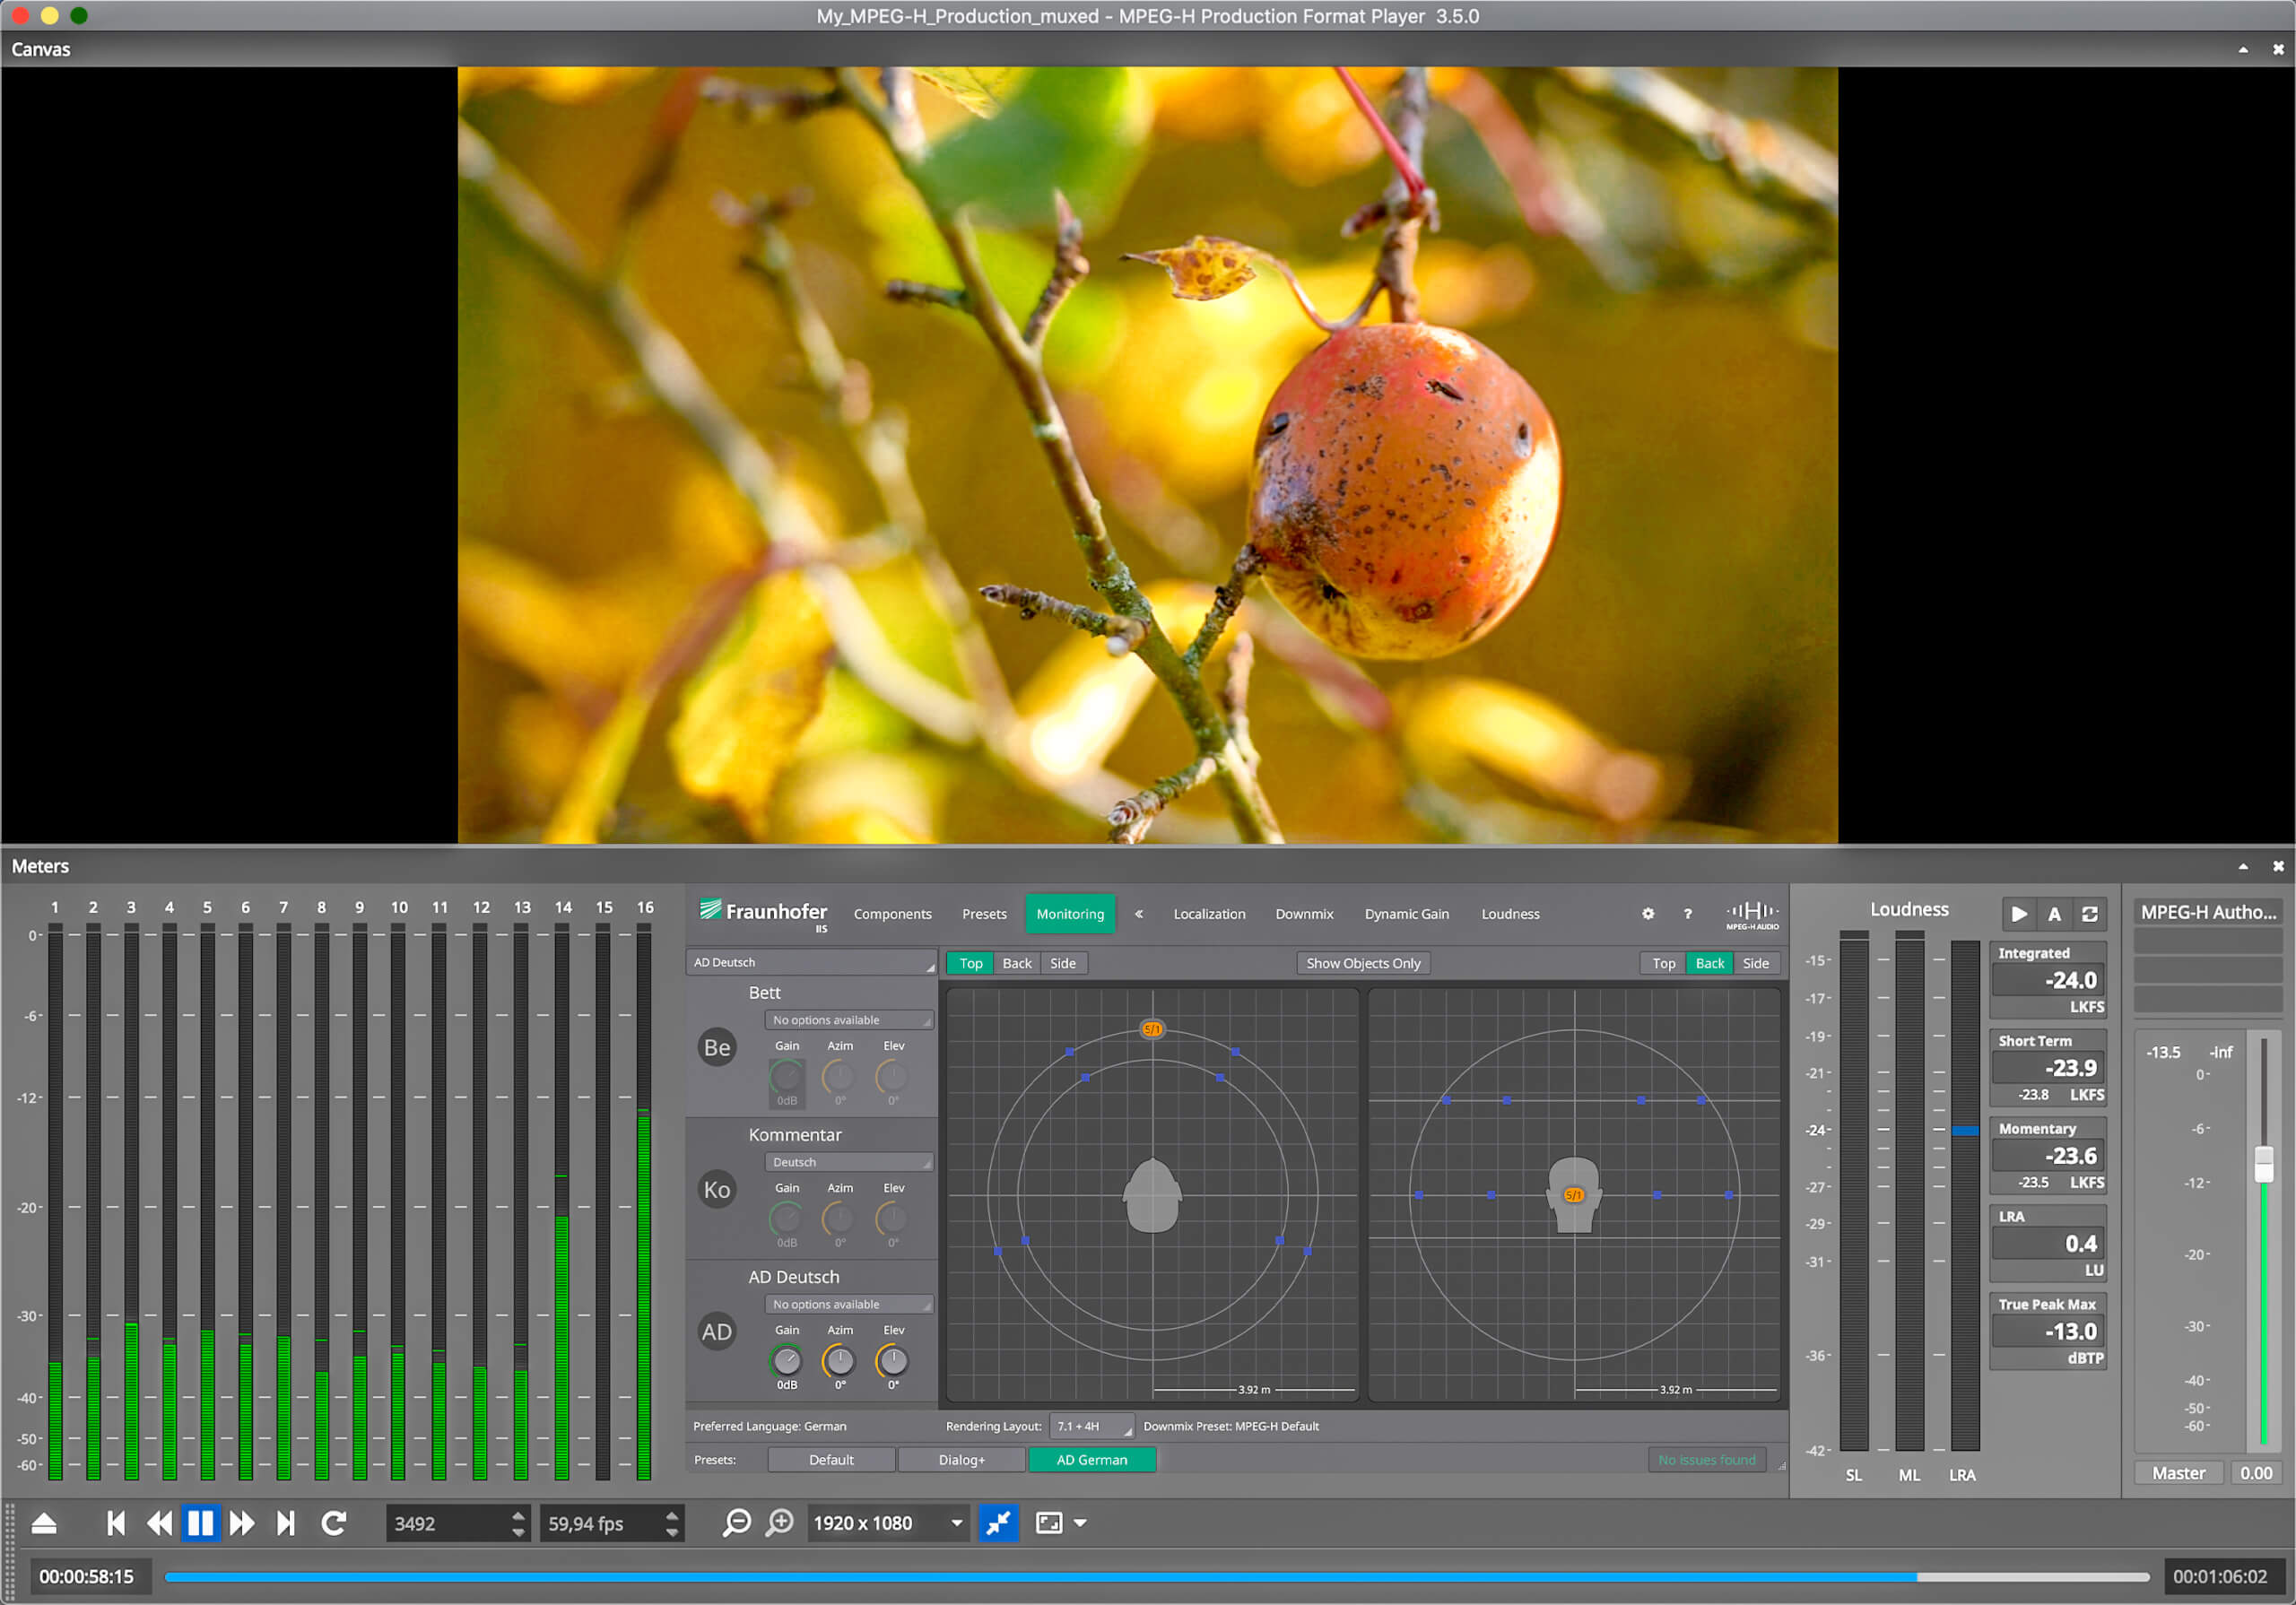 Screenshot of the MPEG-H Production Format Player. There is a preview of the video top centre showing an apple on a tree. Below there are various meters and parameters in the tool.